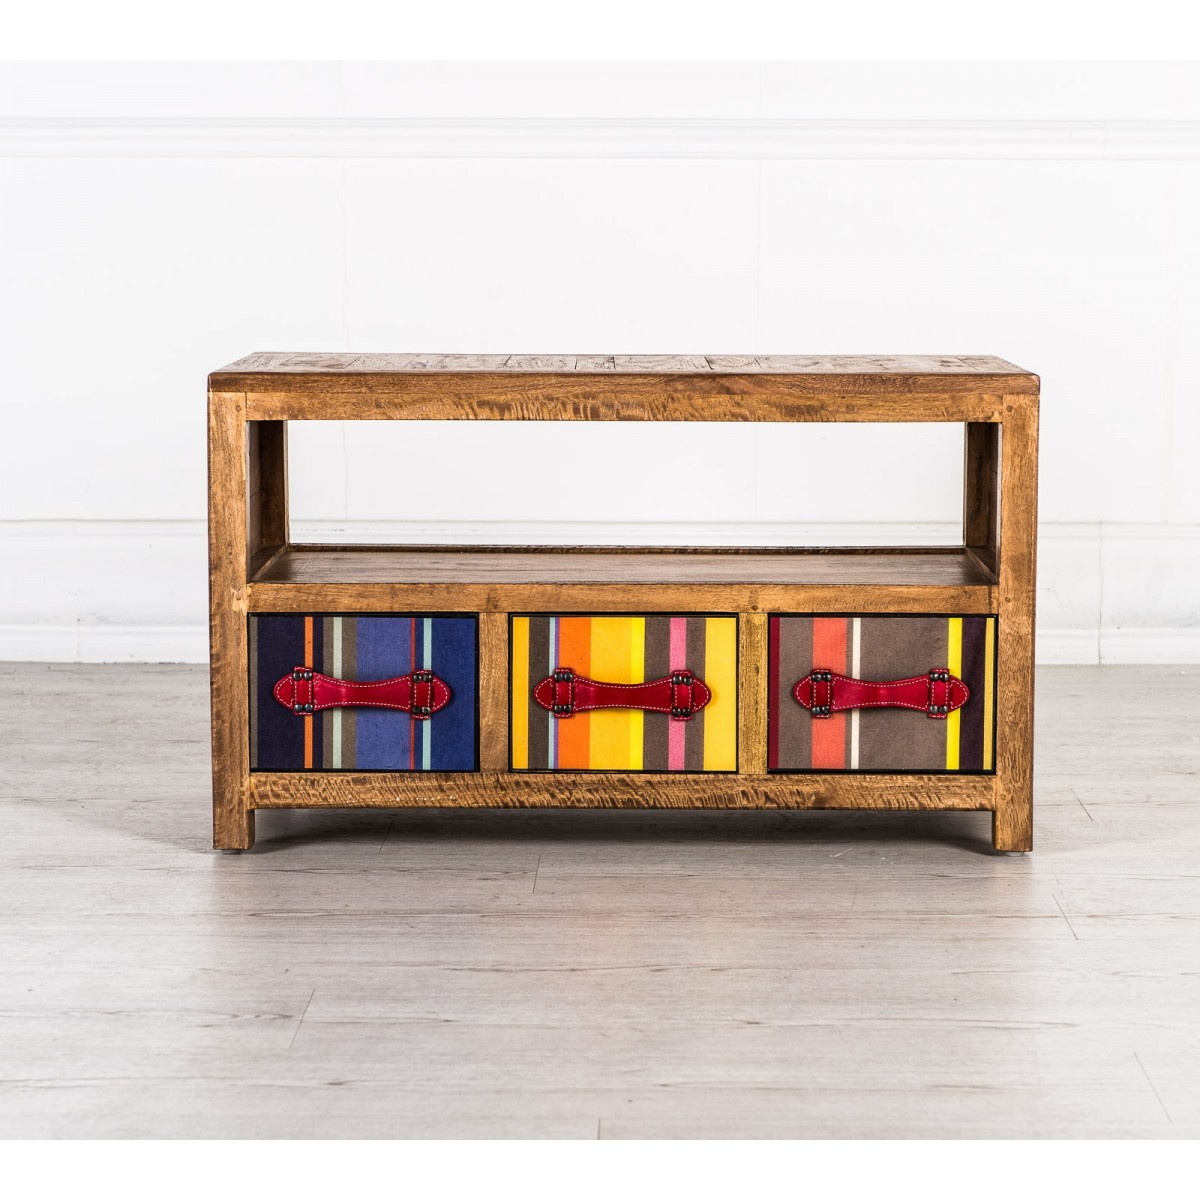 Mobile porta tv colours mobiletto country in legno massello con 3 cassetti multicolor collyshop - Mobile porta tv legno design ...